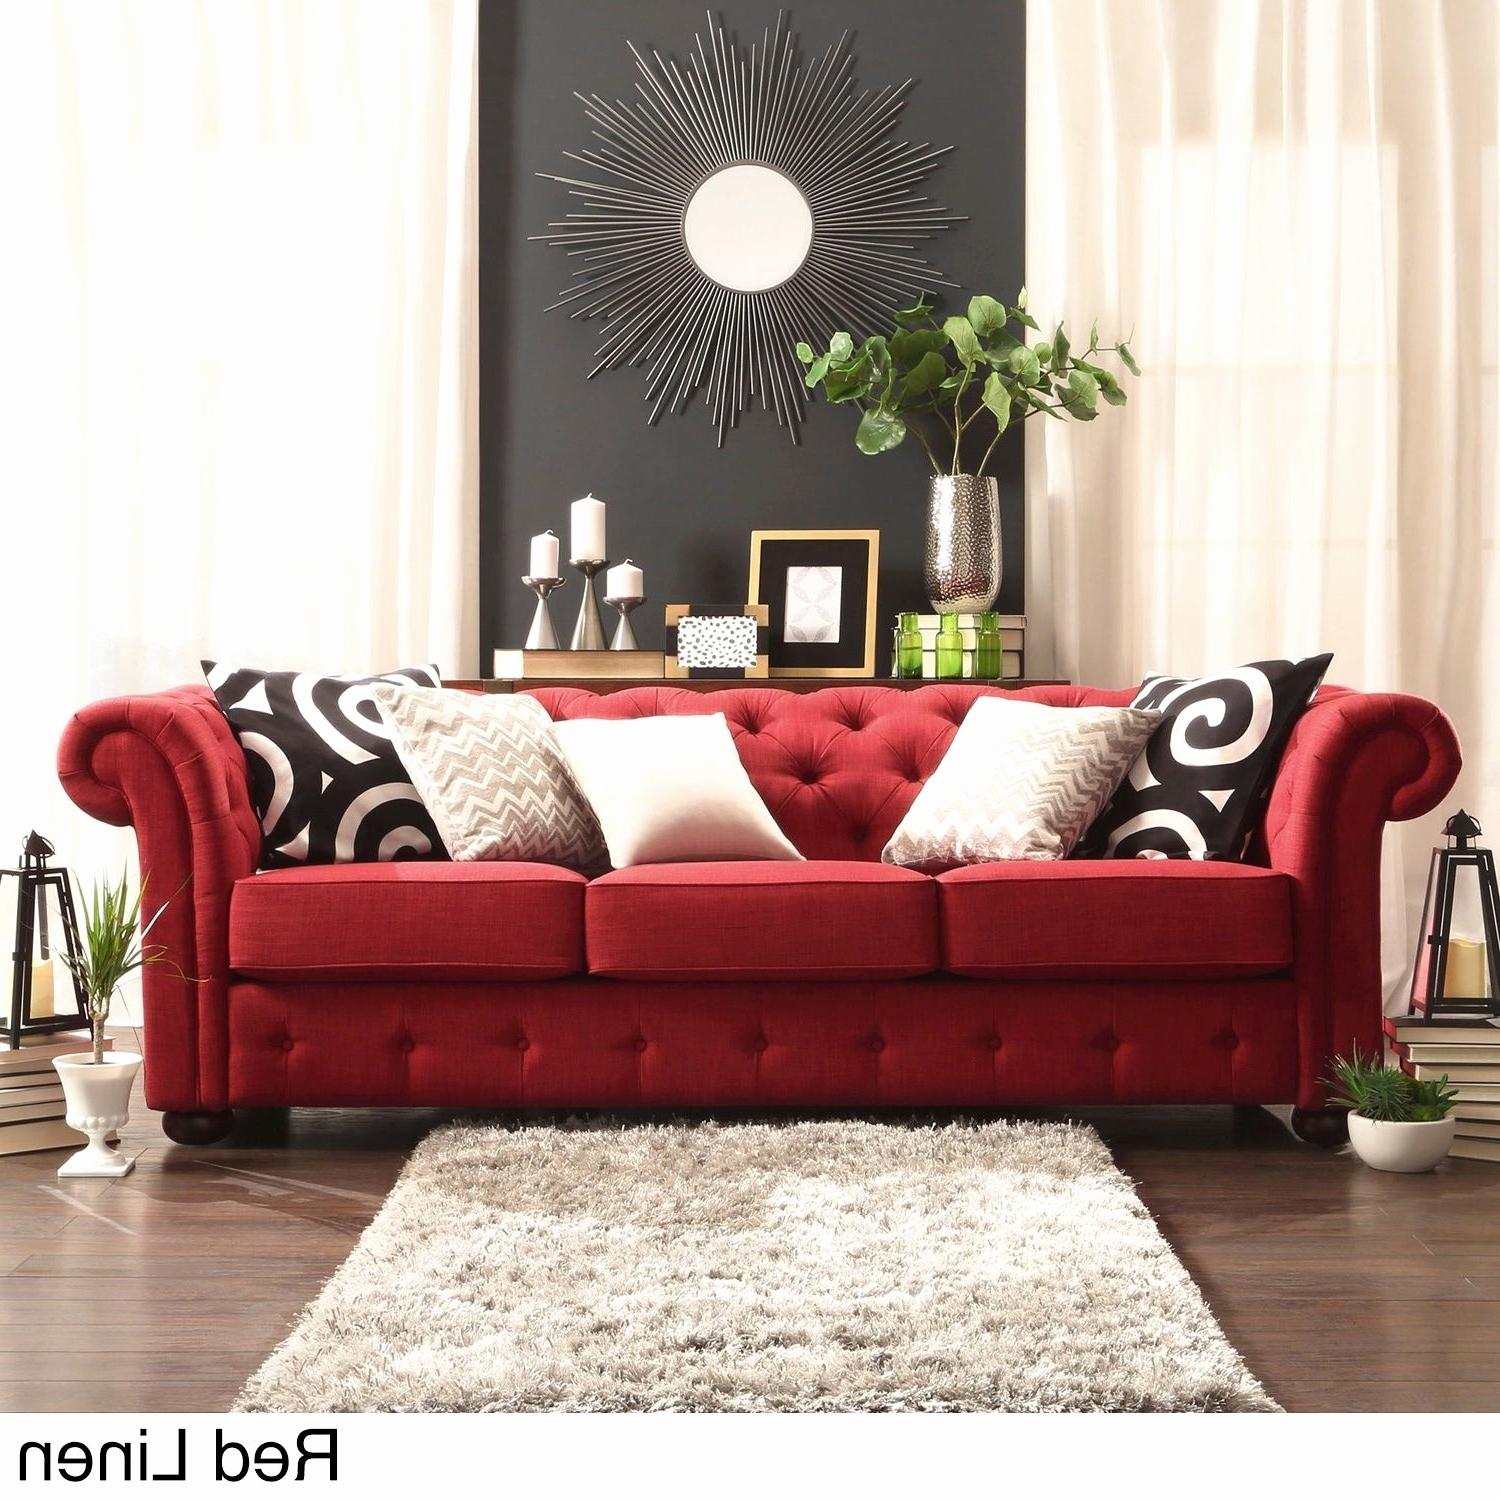 Affordable Tufted Sofas For Well Known Lovely Affordable Tufted Sofa 2018 – Couches And Sofas Ideas (View 15 of 15)